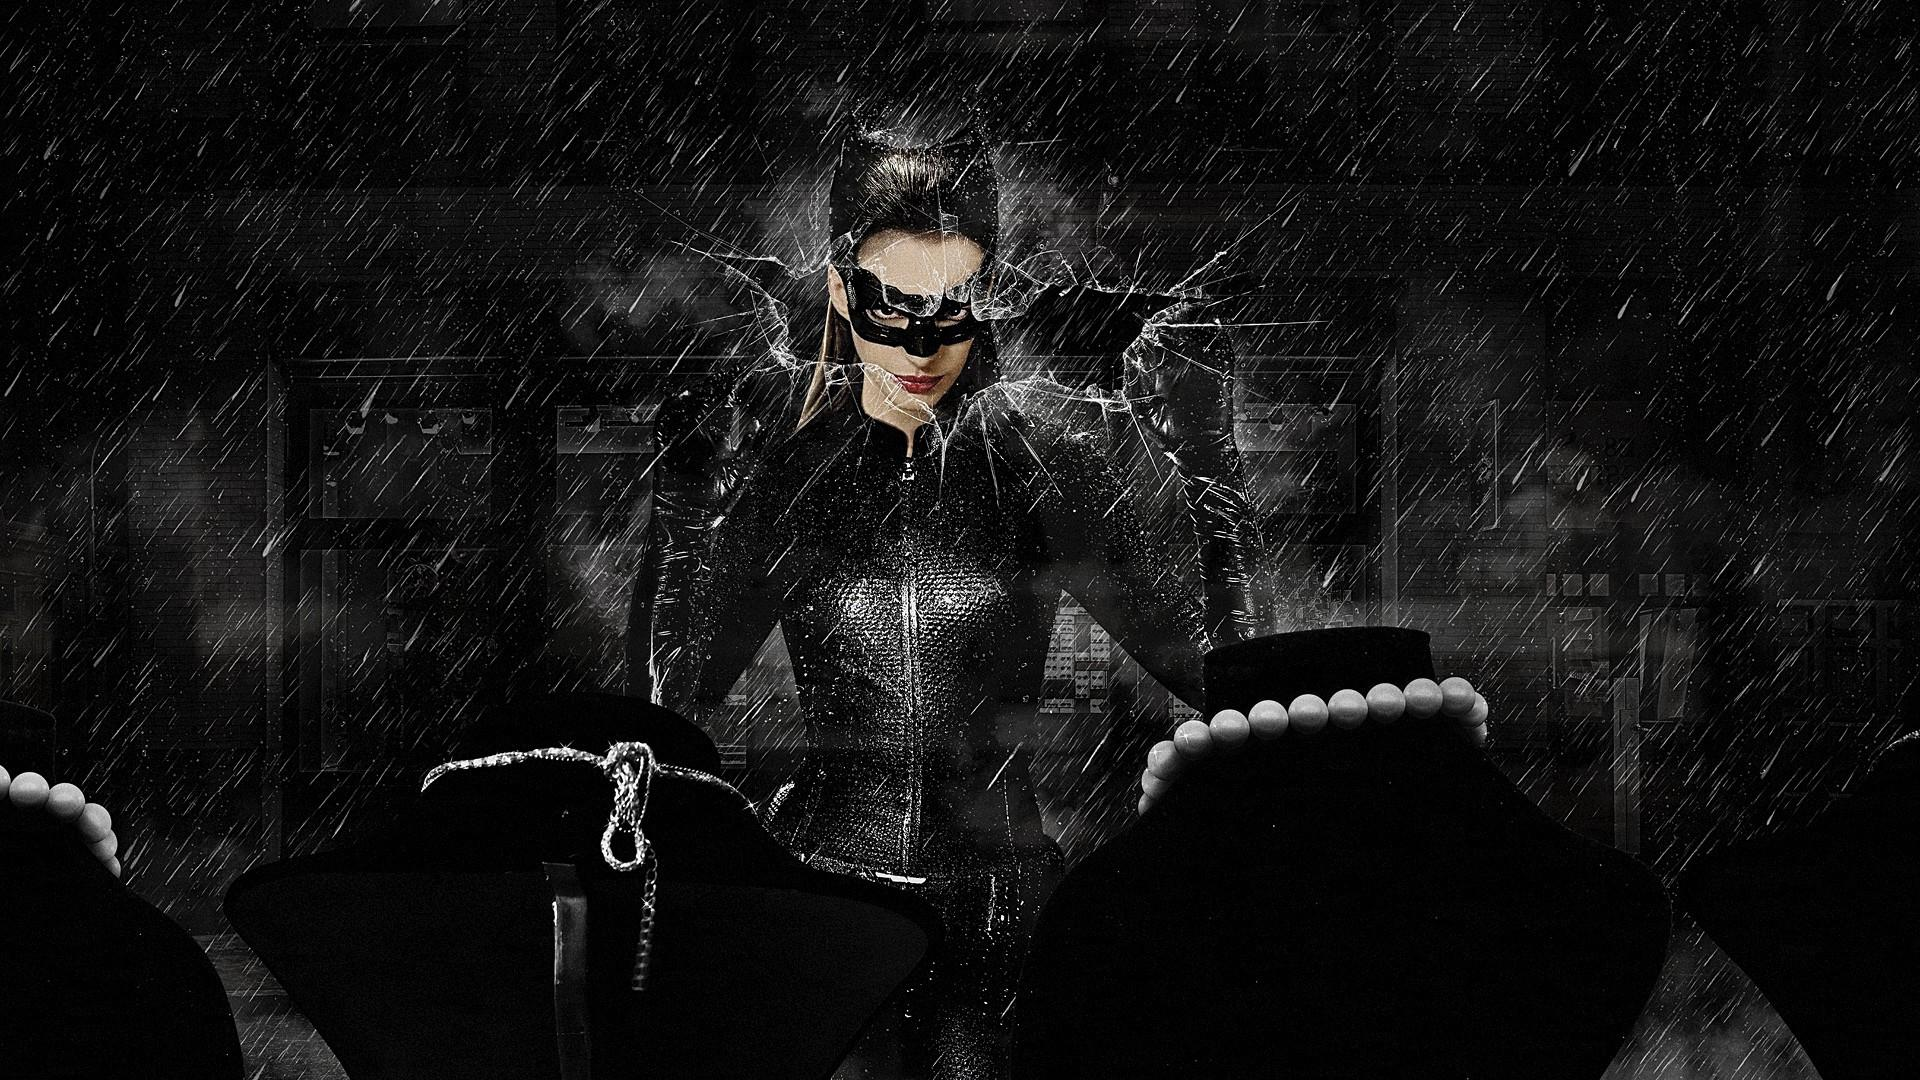 Anne Hathaway - Catwoman Wallpaper - 2